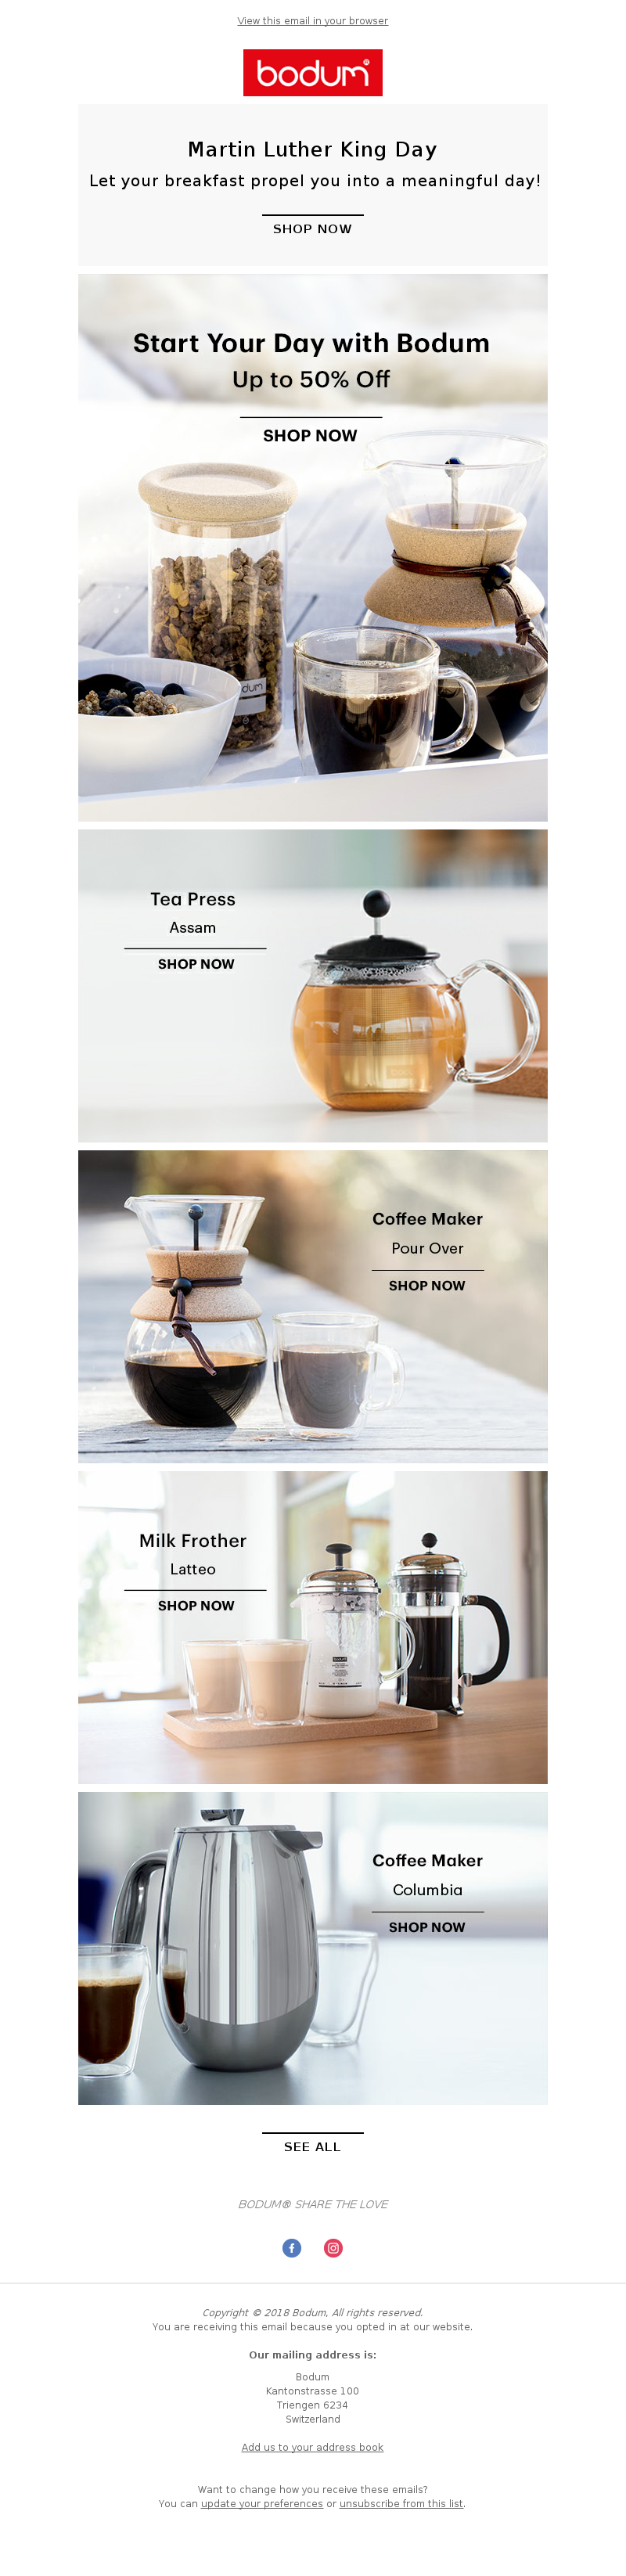 Bodum - Happy Martin Luther King Day - Up to 50%  Off